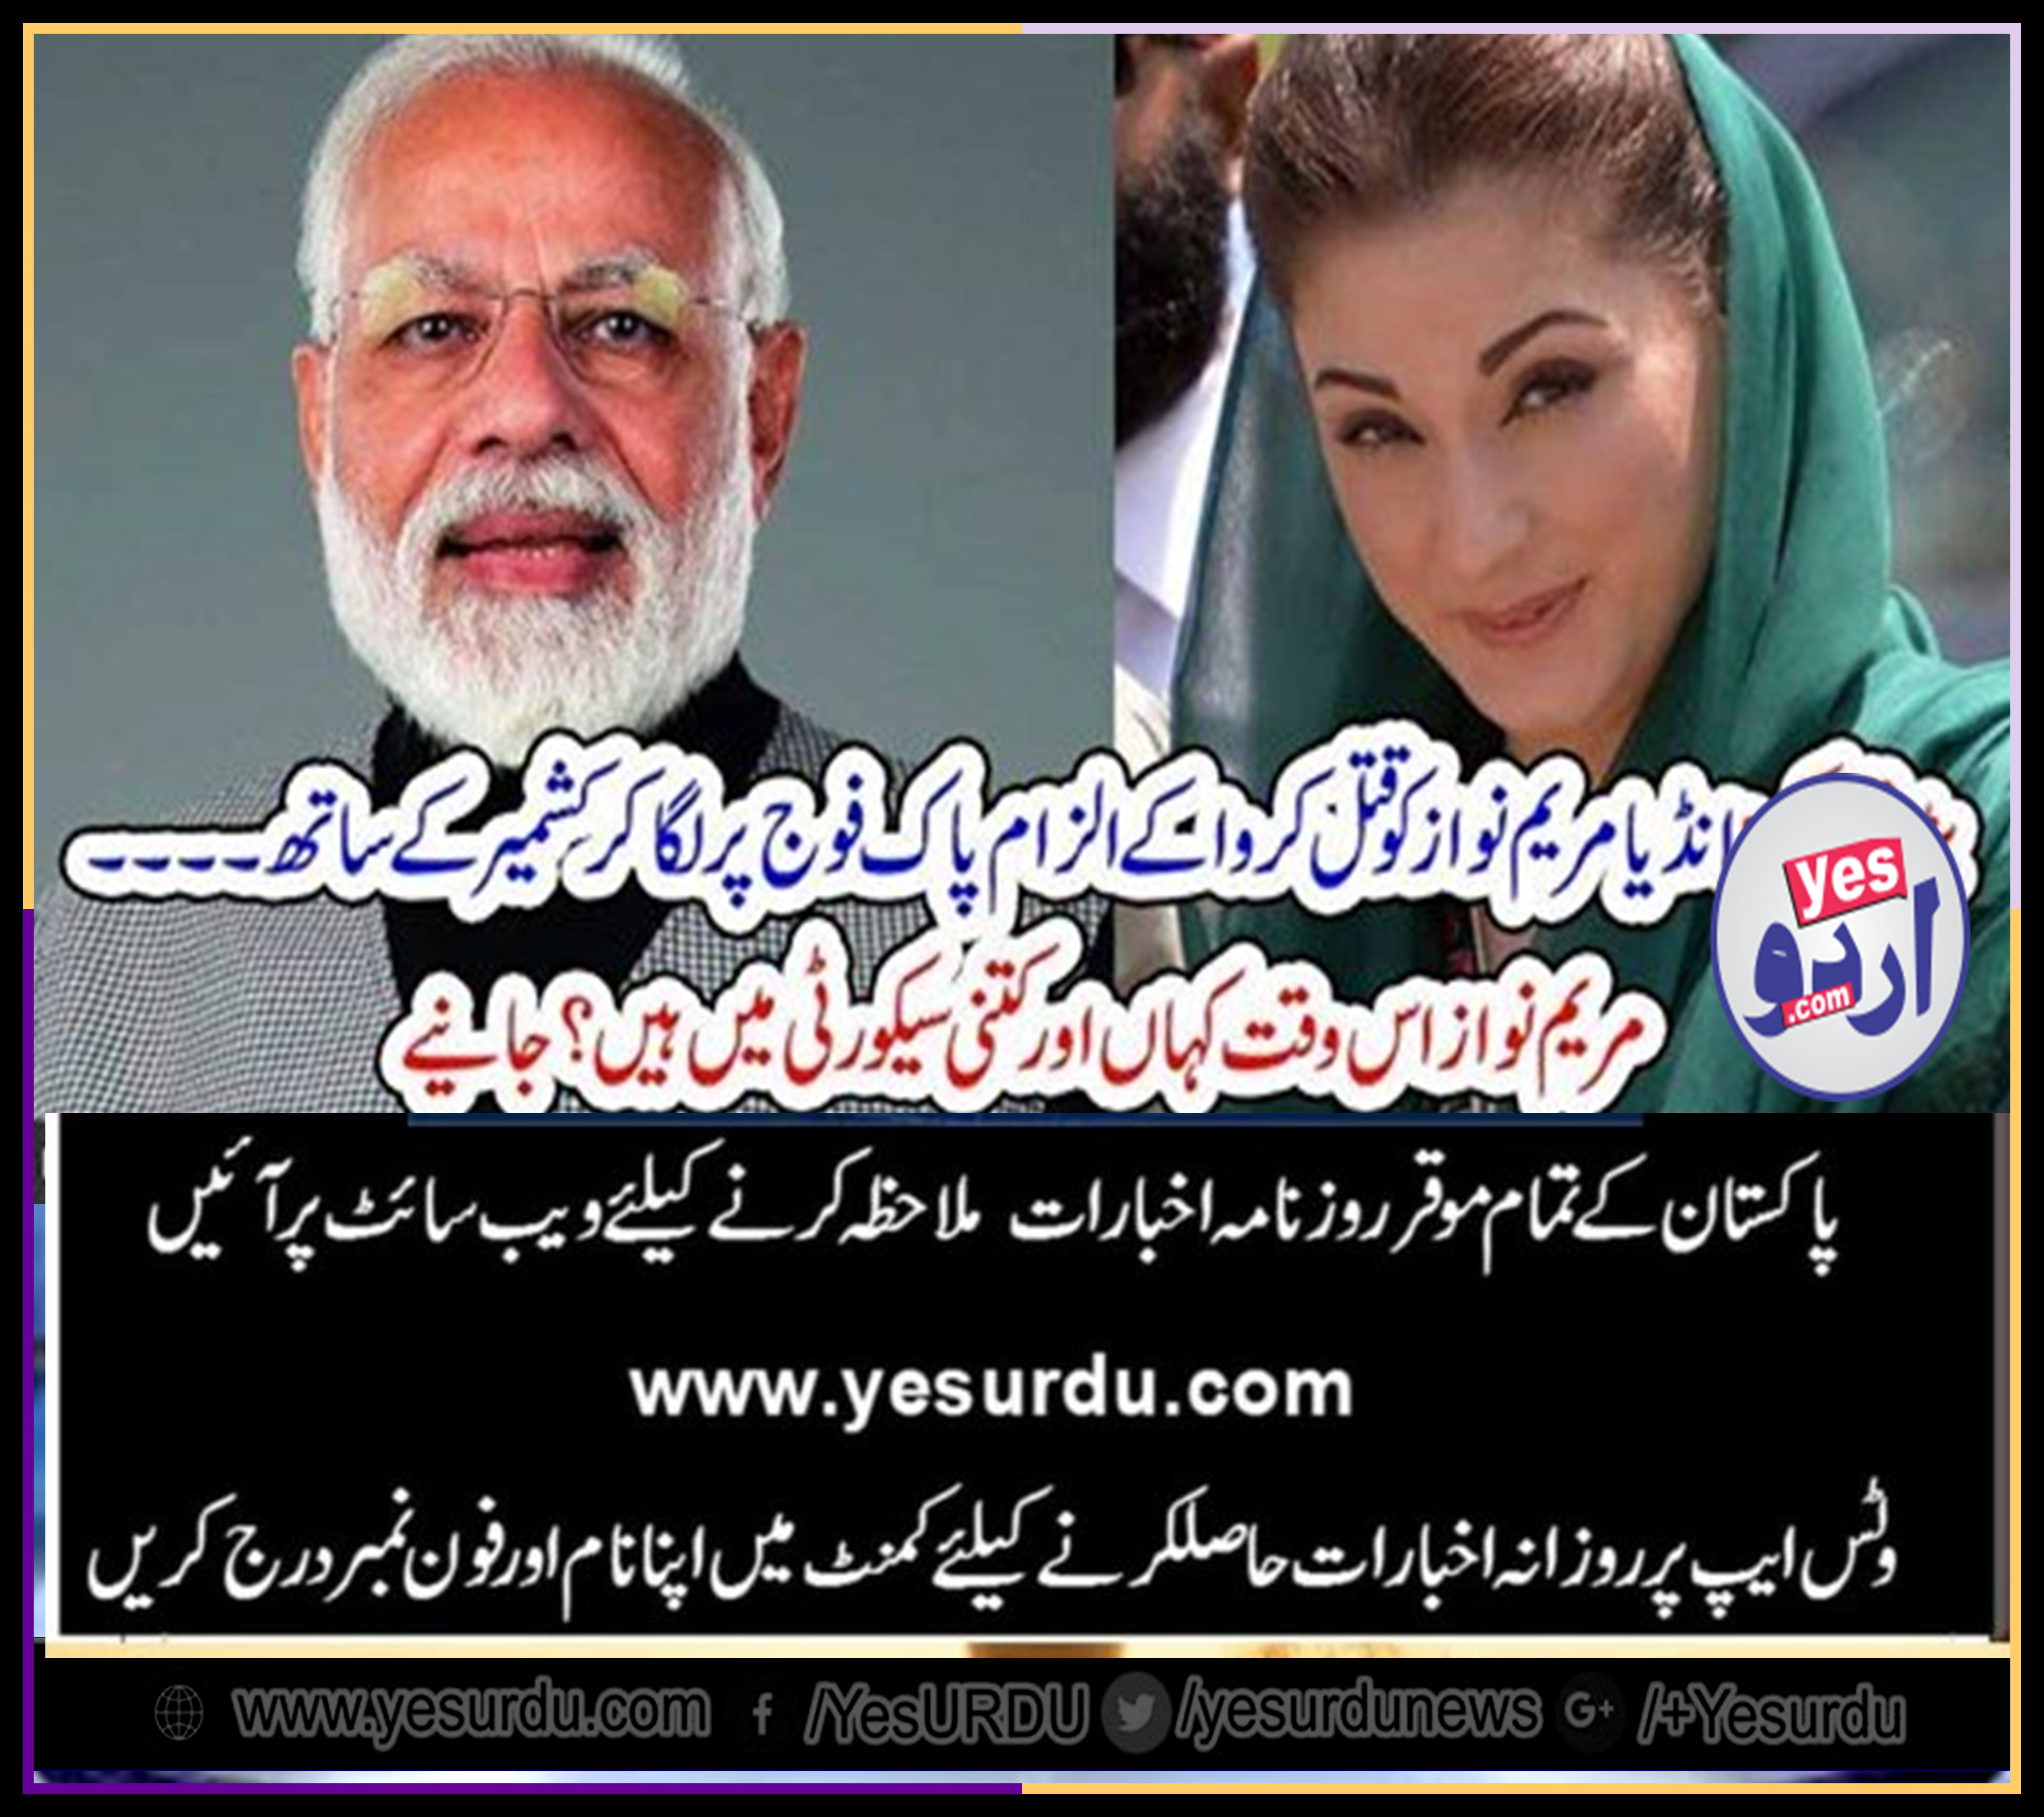 ZAID HAMID, CLAIMED, THAT, MARYAM NAWAZ, WAS, GOINT, TO BE, SHOOTED, BY, INDIAN,  AGENCIES, FOR, SAFETY, PURPOSES, SHE, IS, TAKEN, TO, CUSTODY, IN, LAW, ENFORCEMENT, AGENCIES